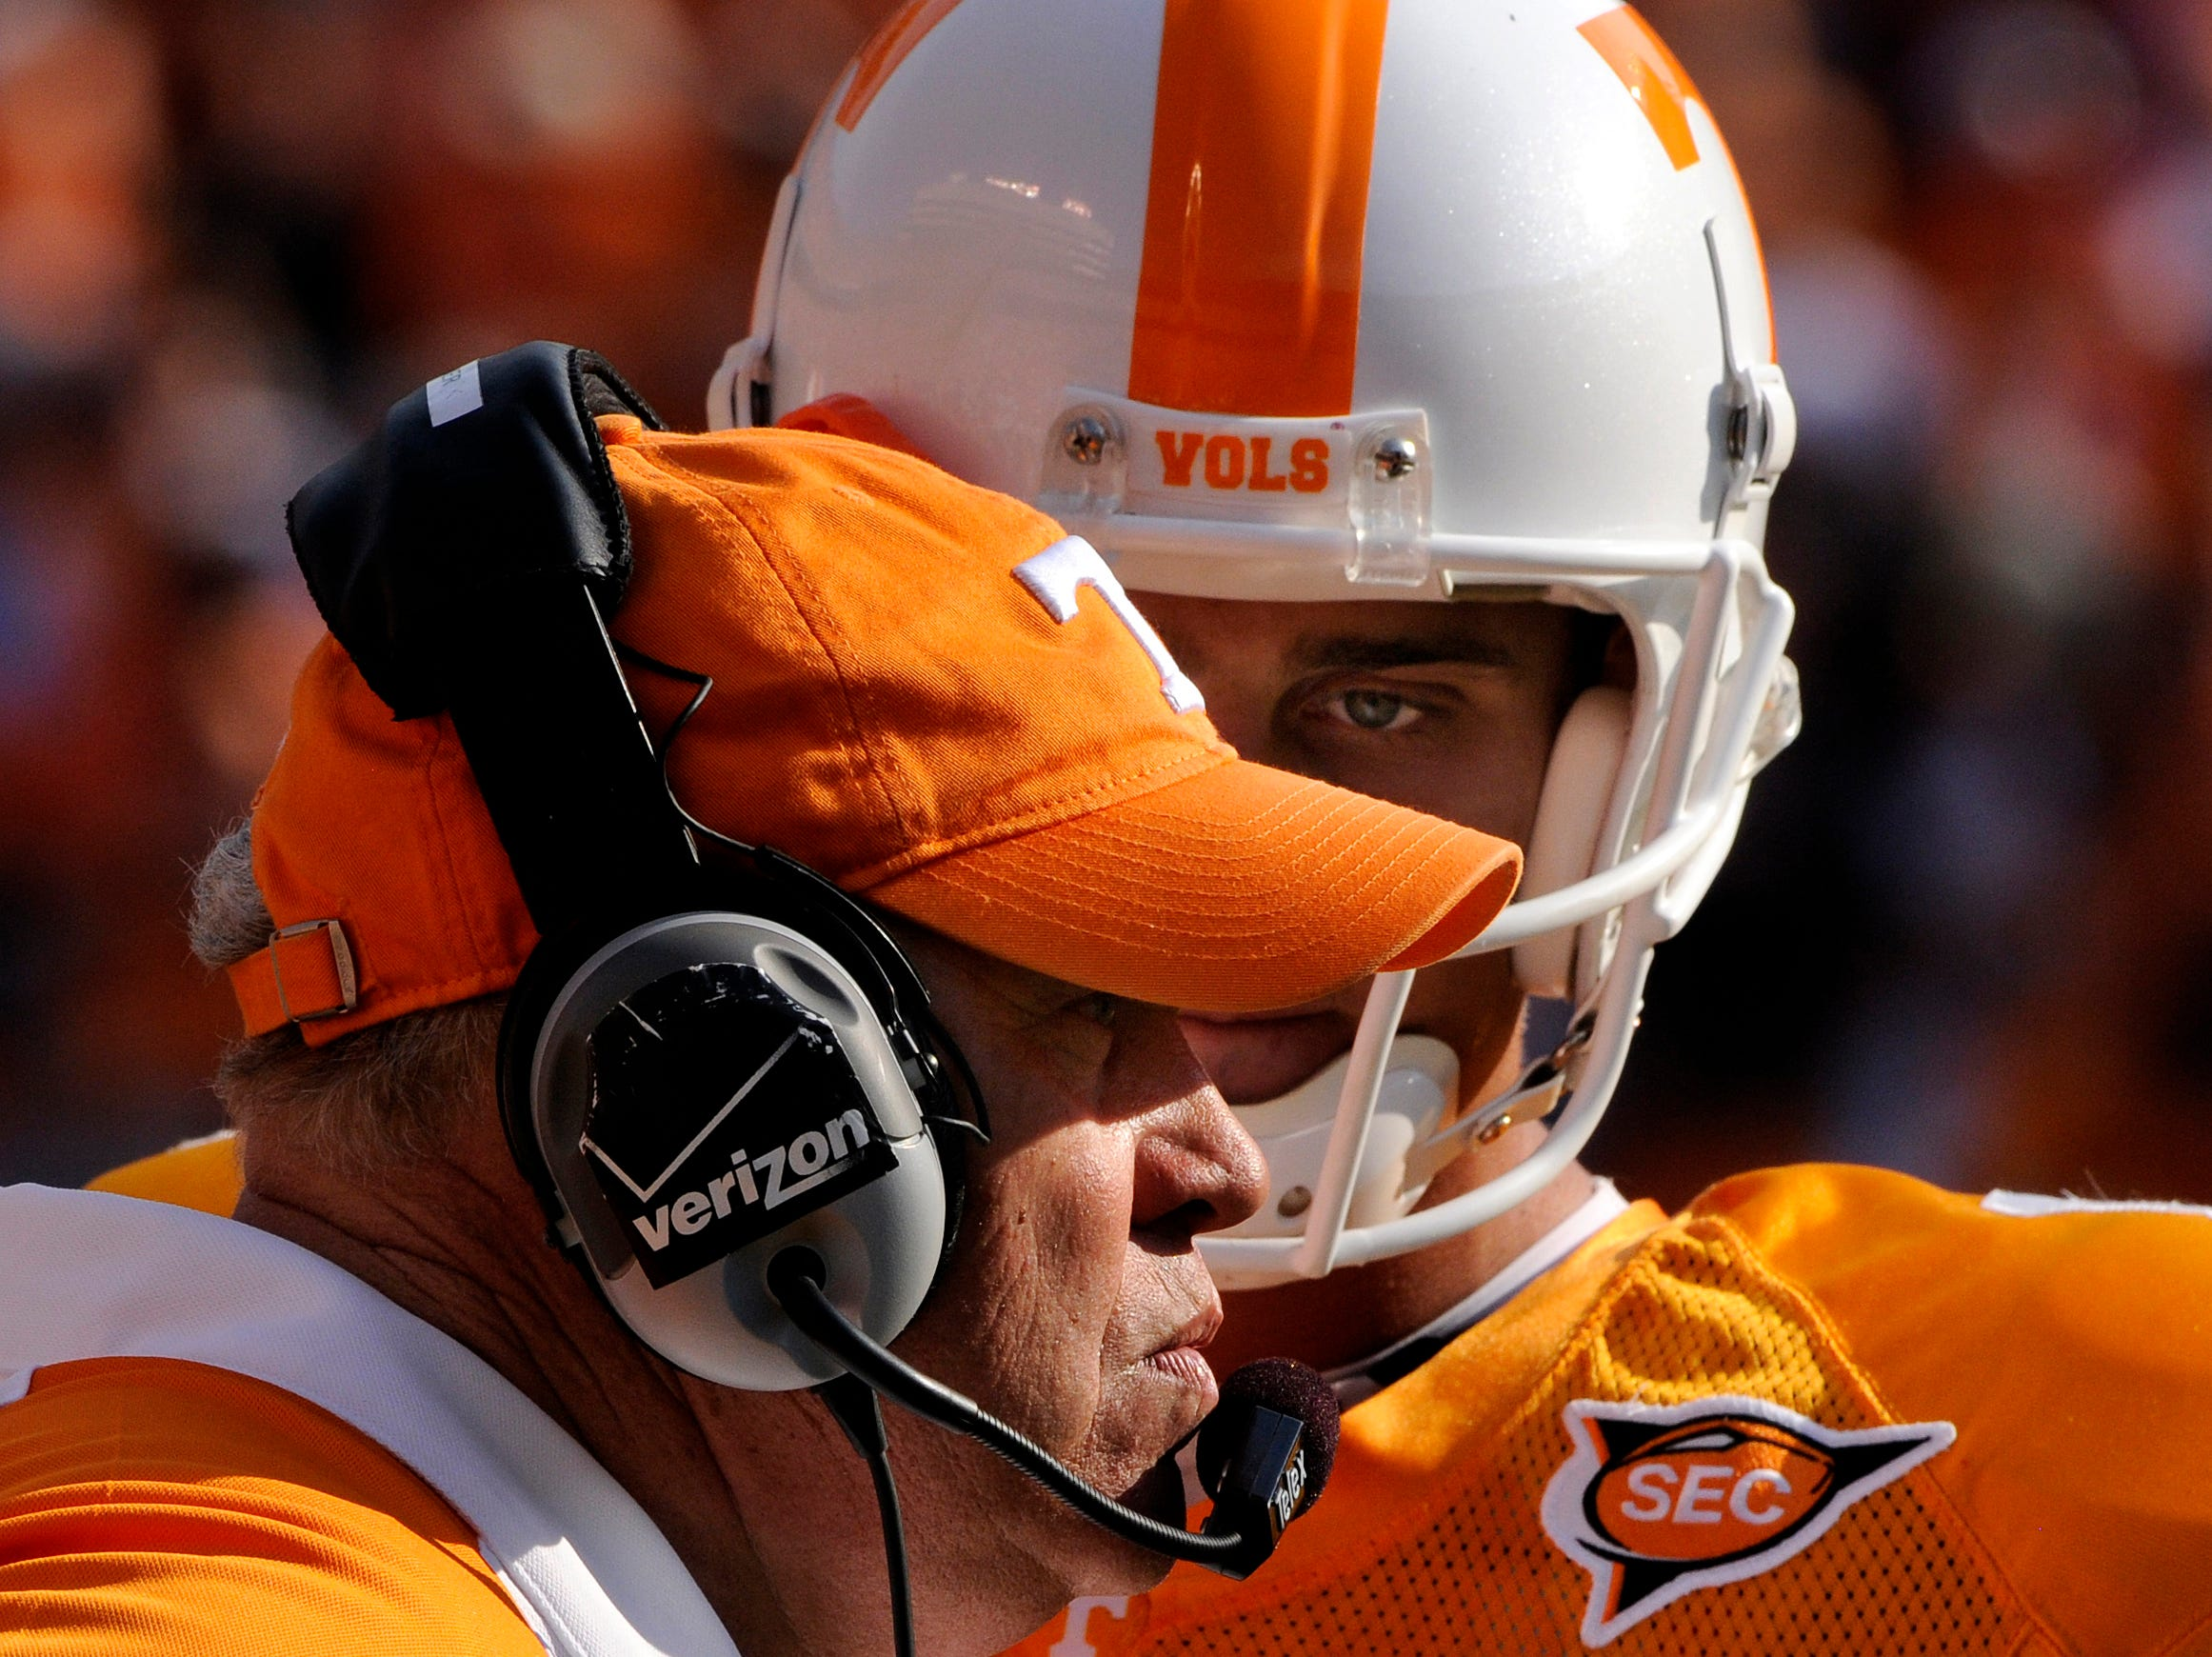 Tennessee quarterback Jonathan Crompton (8) waits for a reaction from head coach Phillip Fulmer on the sideline. Tennessee lost 30-6 to Florida in Neyland Stadium on Saturday, September 20, 2008.